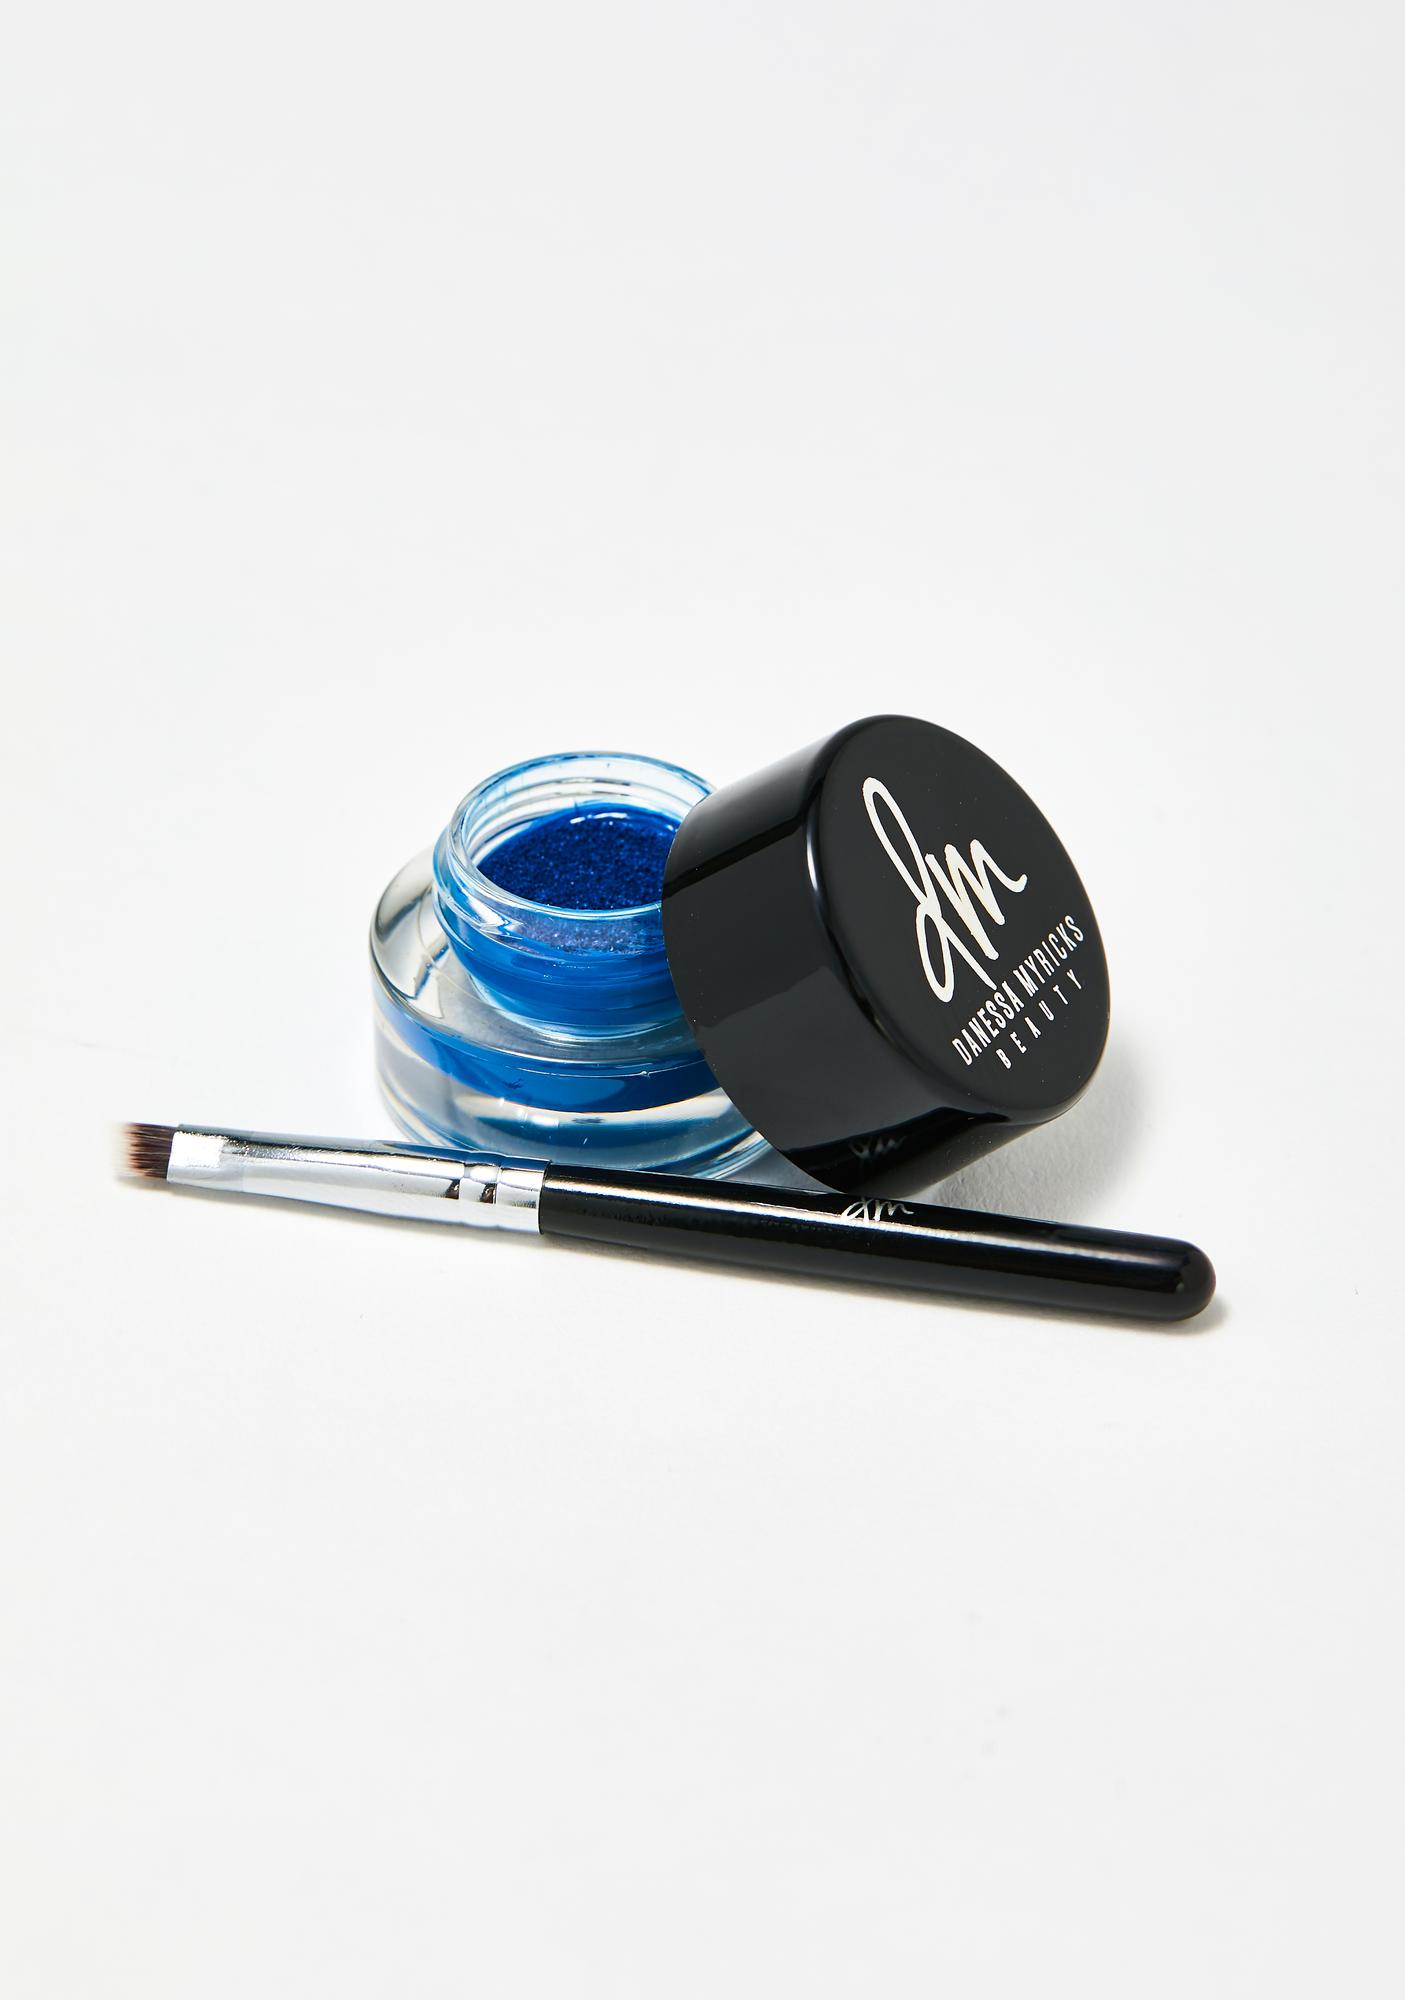 Danessa Myricks Beauty Bluejay Waterproof Cushion Liner